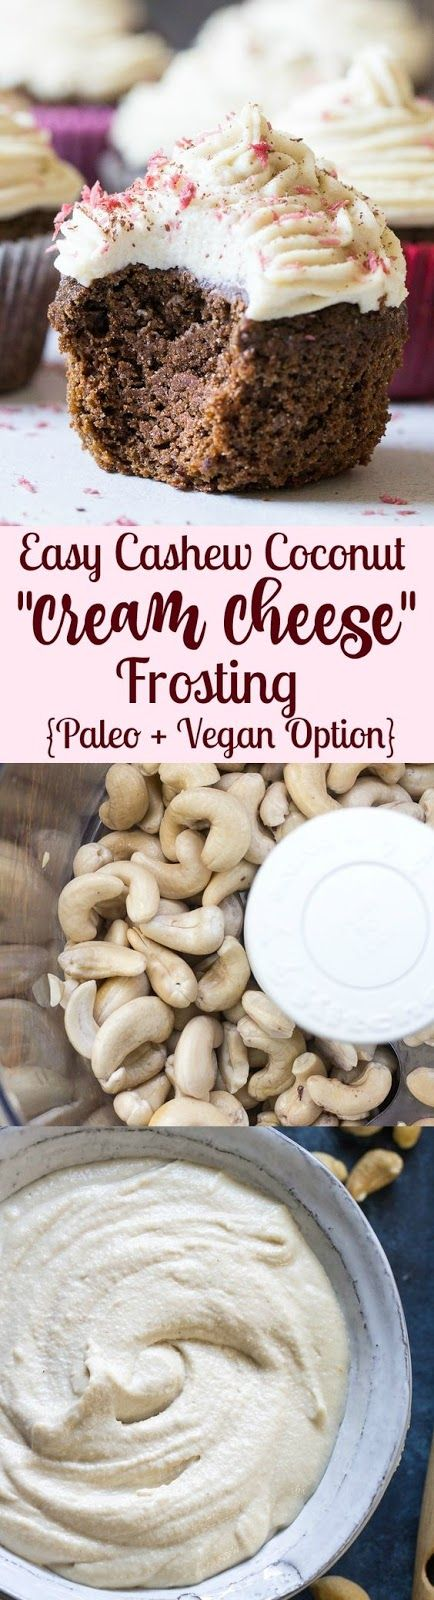 COCONUT CASHEW CREAM CHEESE FROSTING {PALEO W/VEGAN OPTION} | Cake And Food Recipe